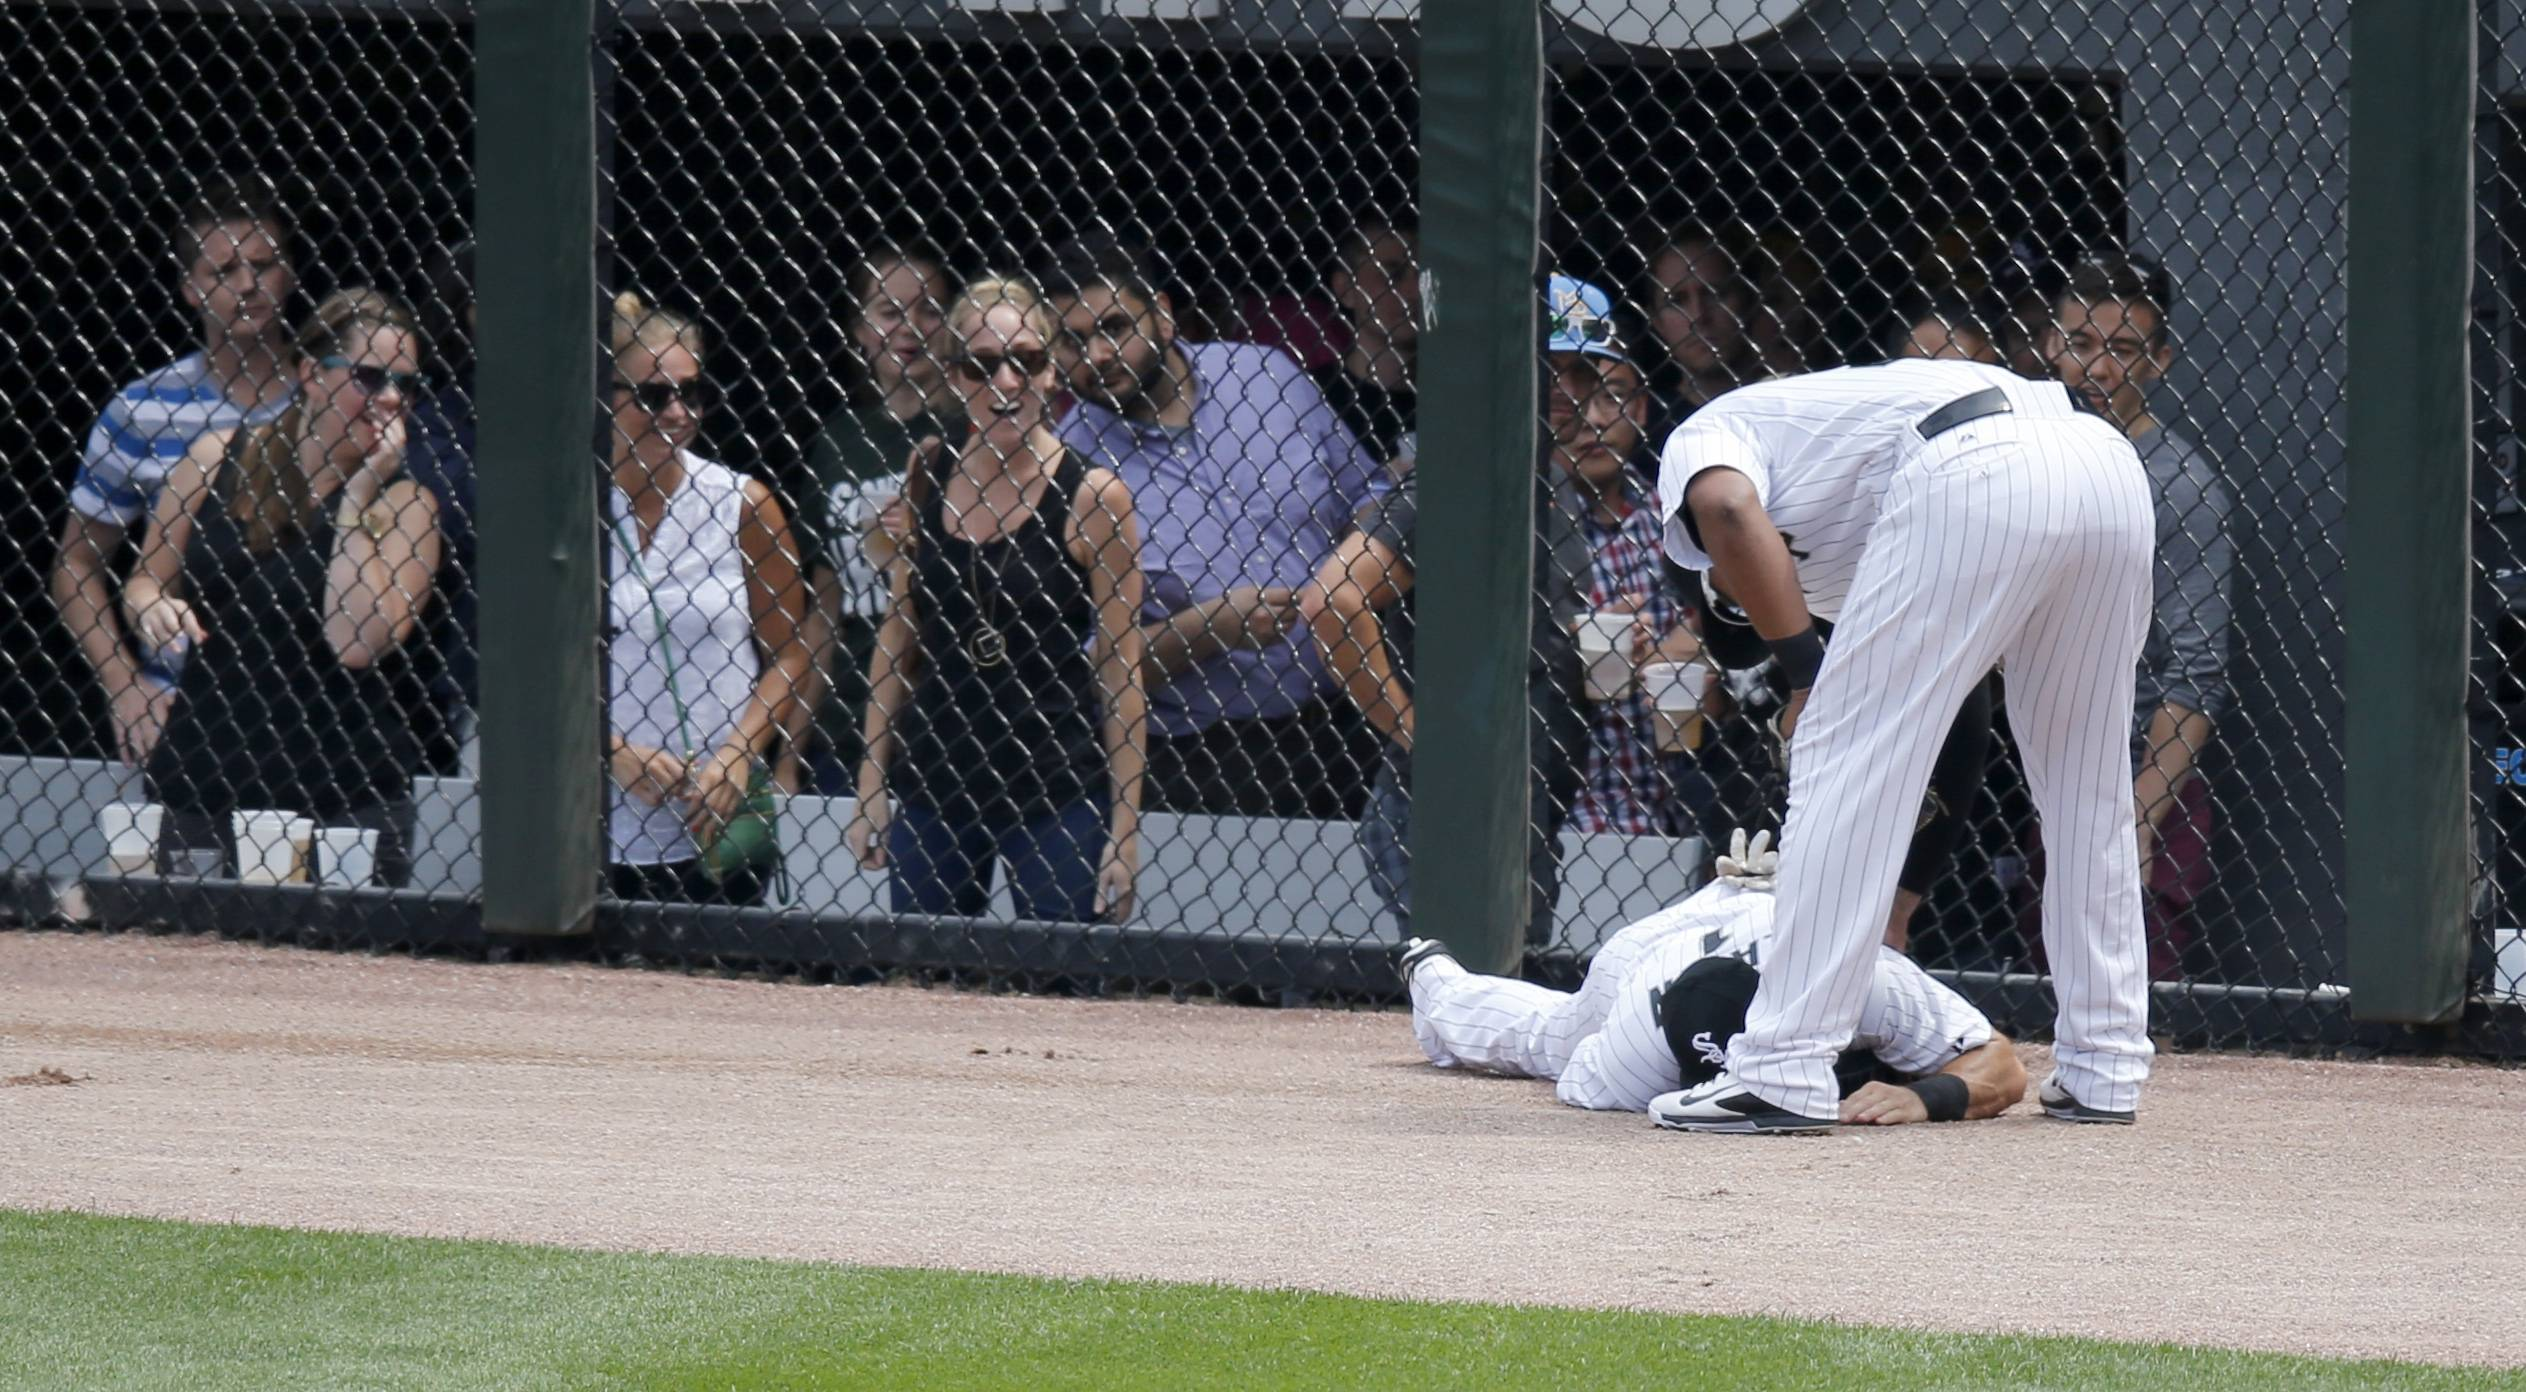 Dayan Viciedo checks on Adam Eaton after Eaton slammed into the fence chasing a 2-run homer by the Rangers' Adam Rosales.